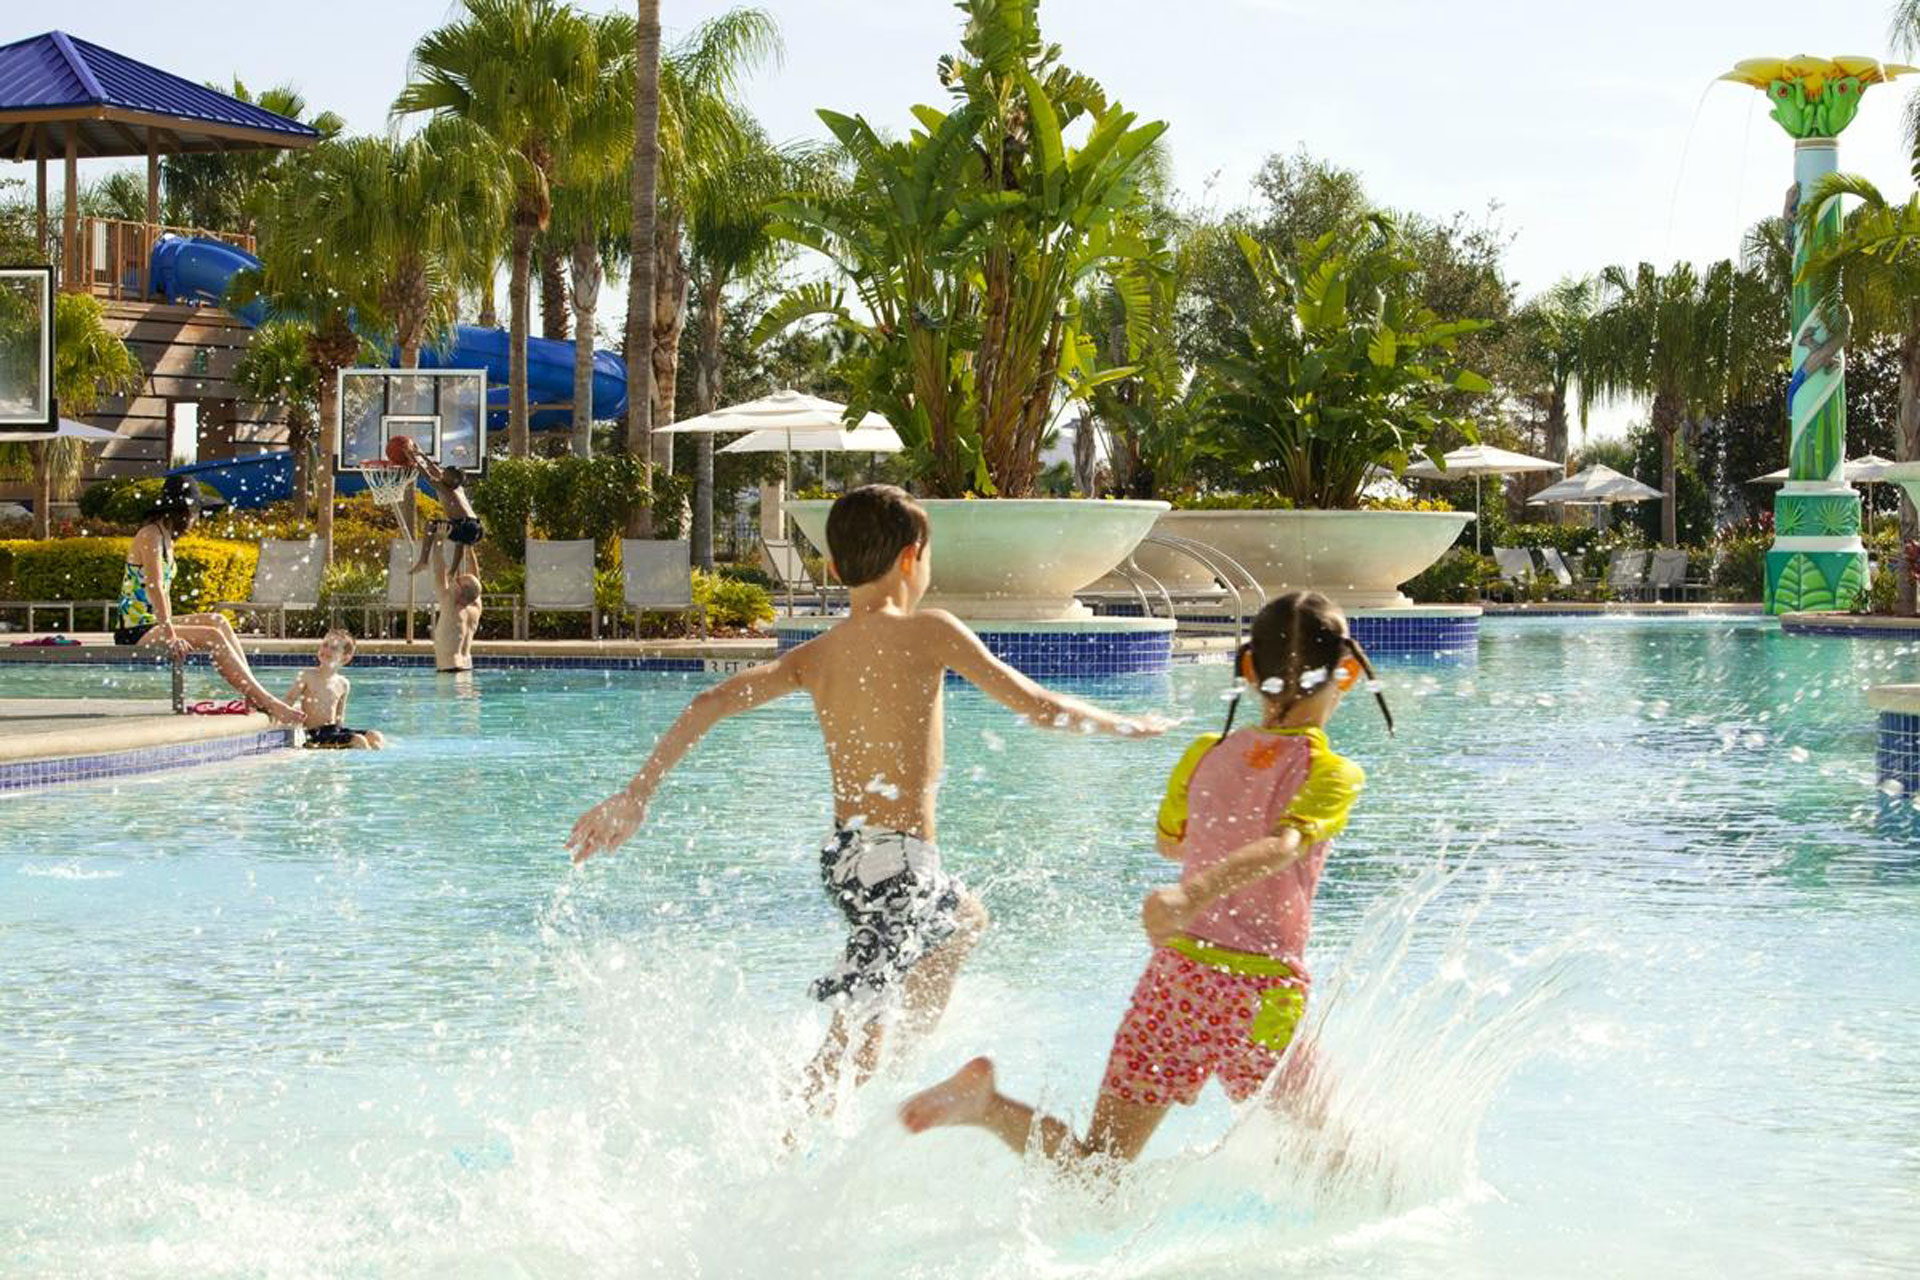 Kids Splashing in Pool at Hilton Orlando; Courtesy of Hilton Orlando